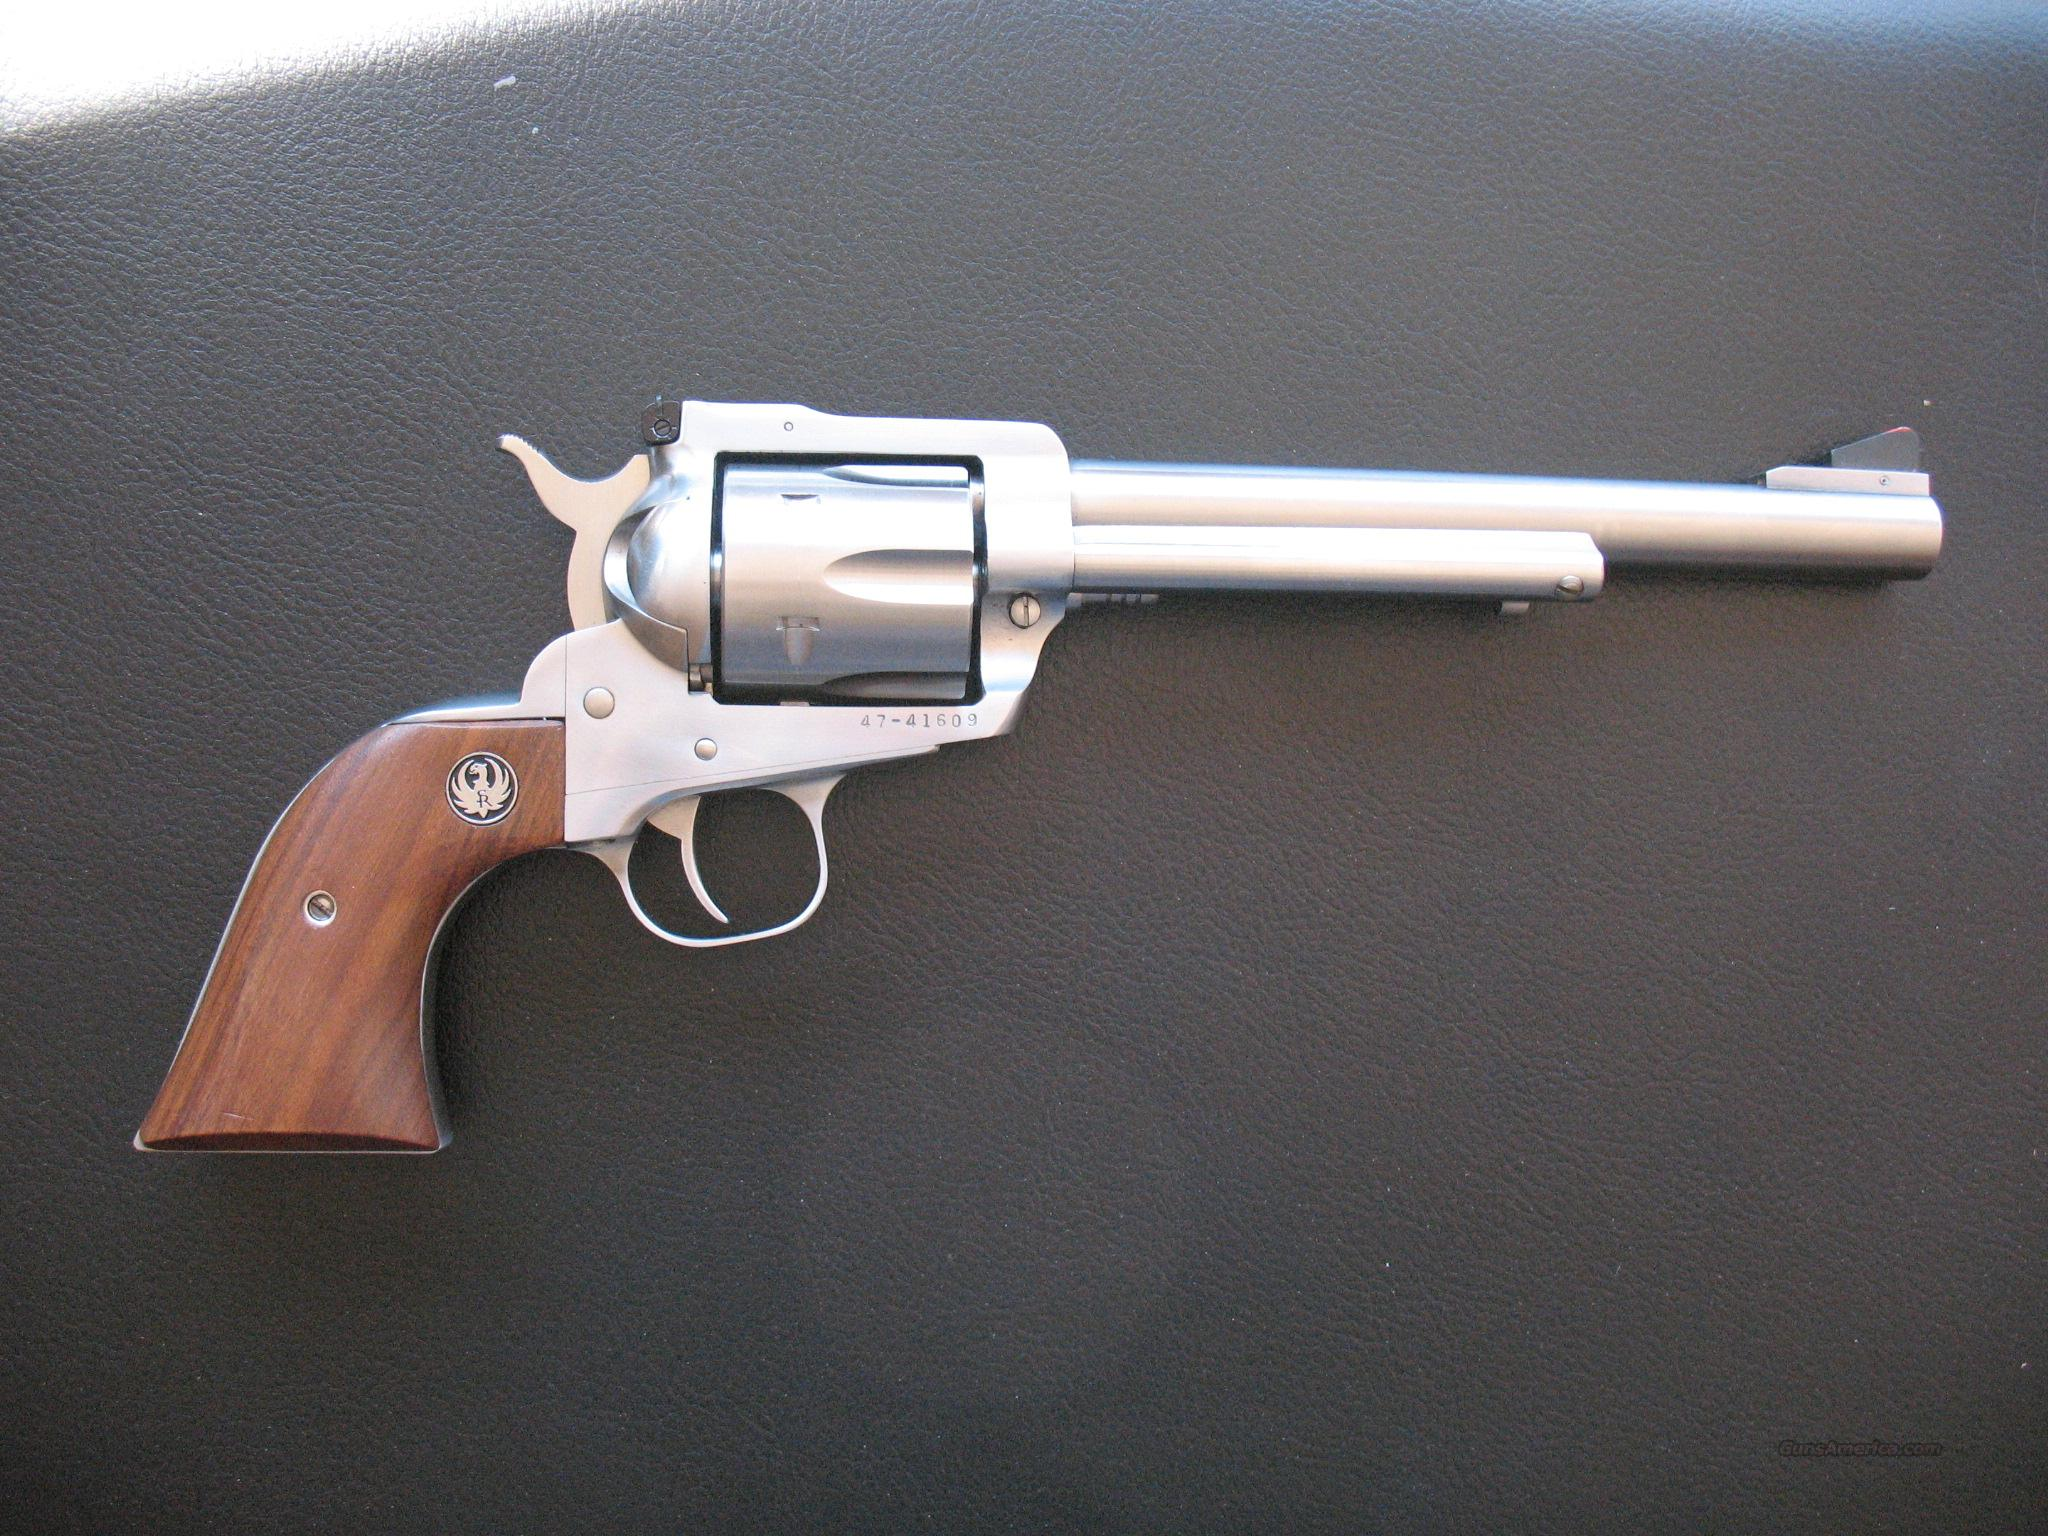 Ruger Blackhawk Stainless .45 Colt  Guns > Pistols > Ruger Single Action Revolvers > Blackhawk Type